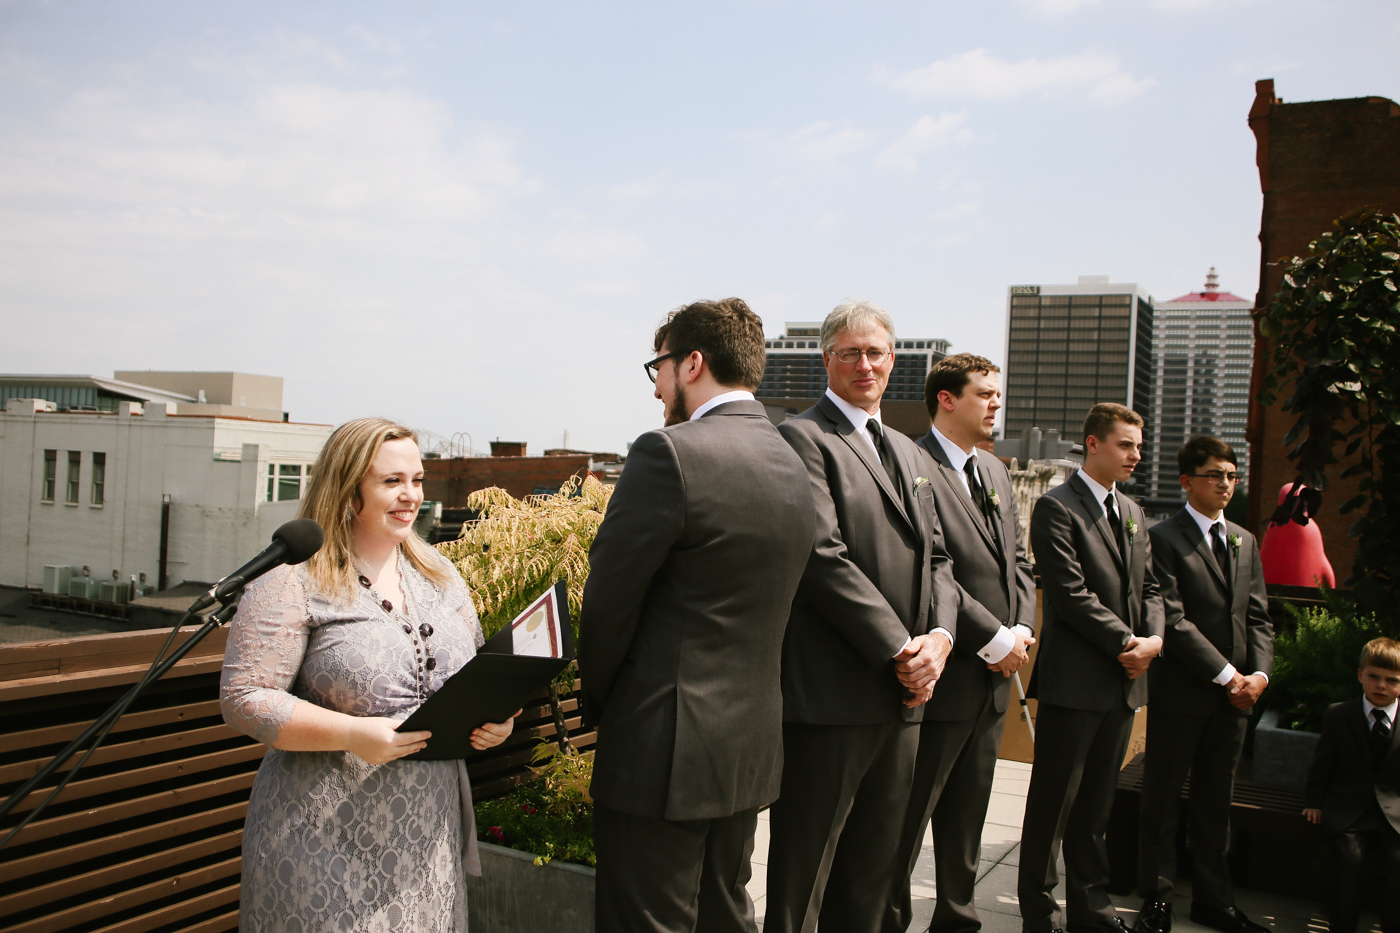 21c-rooftop-Louisville-elegant-kentucky-chicago-wedding-163.jpg